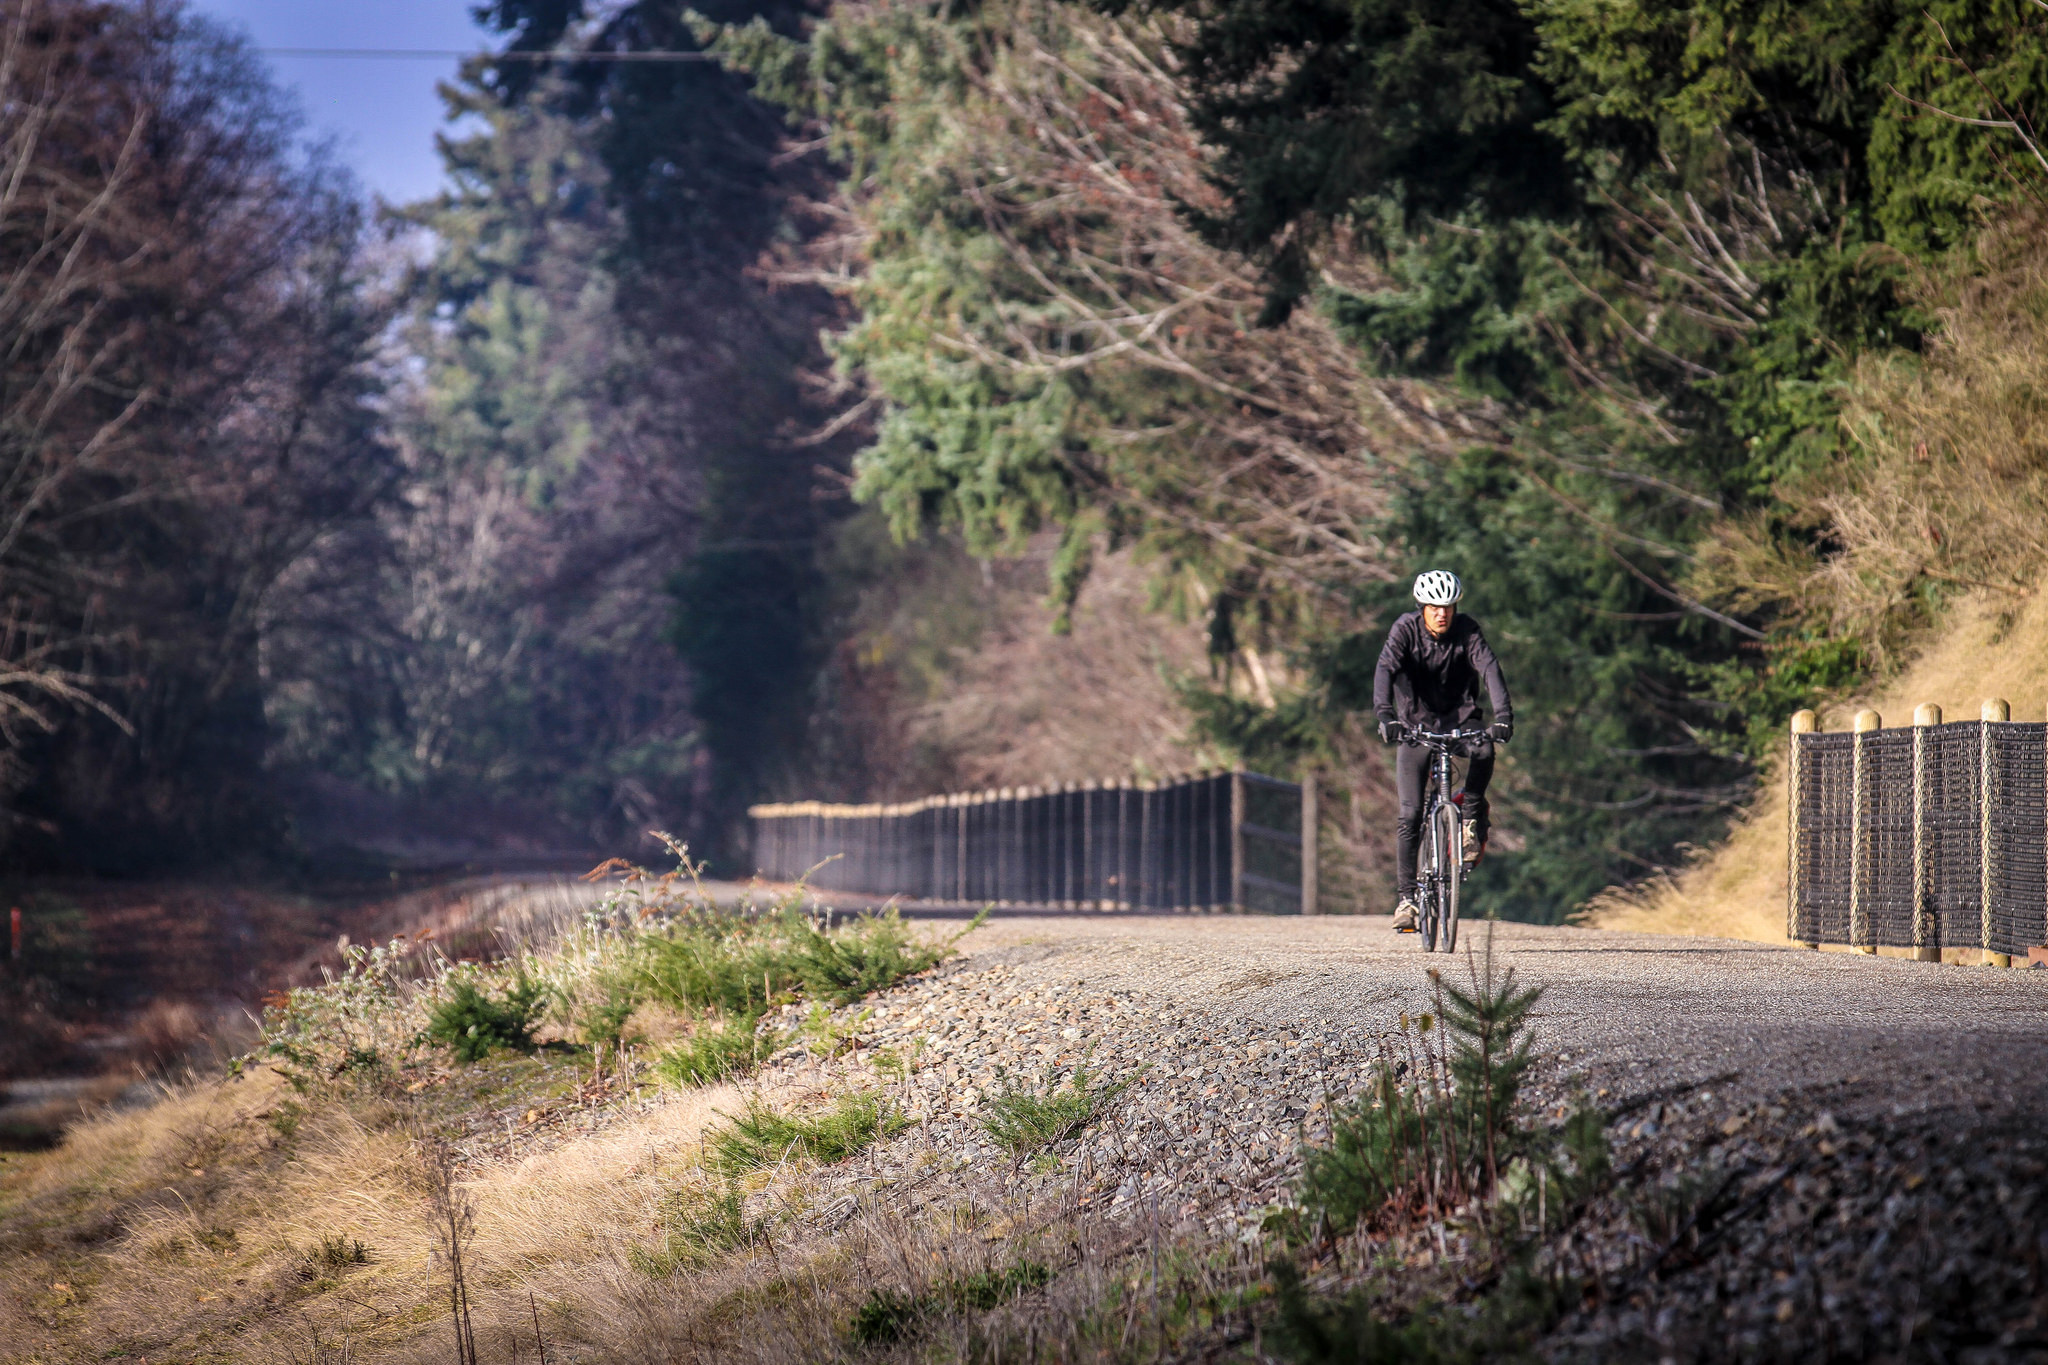 The trail would become part of the everday experience for thousands of King County residents for commute trips, trips from home and school, trips to the store, and for recreation.